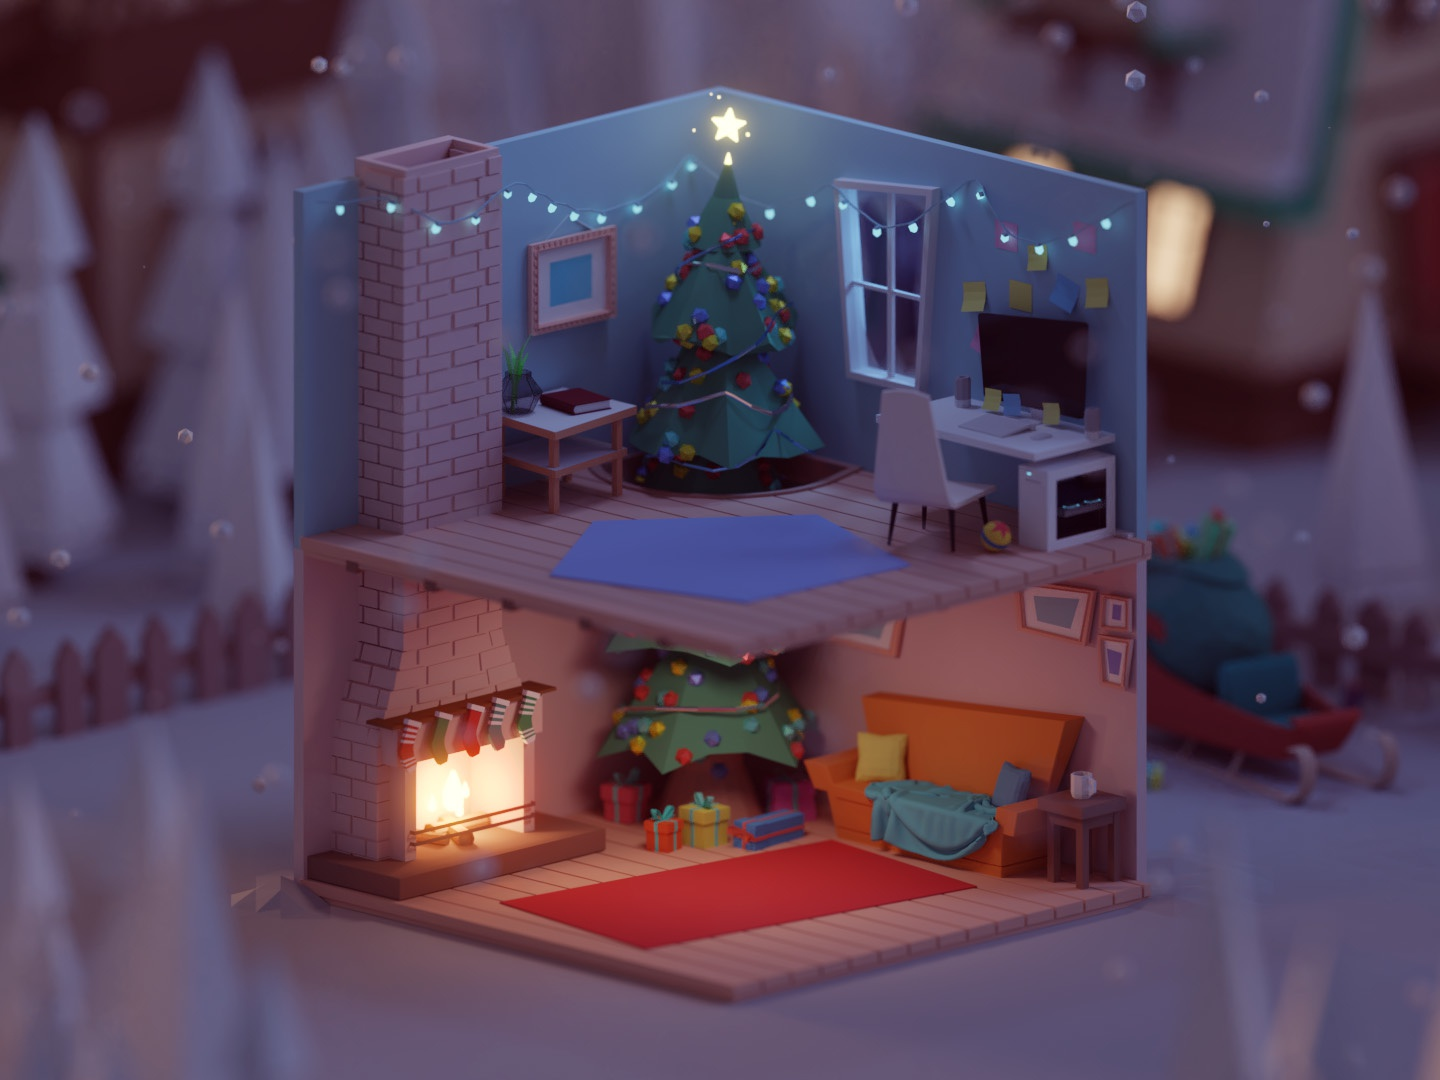 Christmas Competition 2018 (WIP) snow christ house gifts santa rooms xmas christmas lowpoly illustration b3d low poly isometric blender